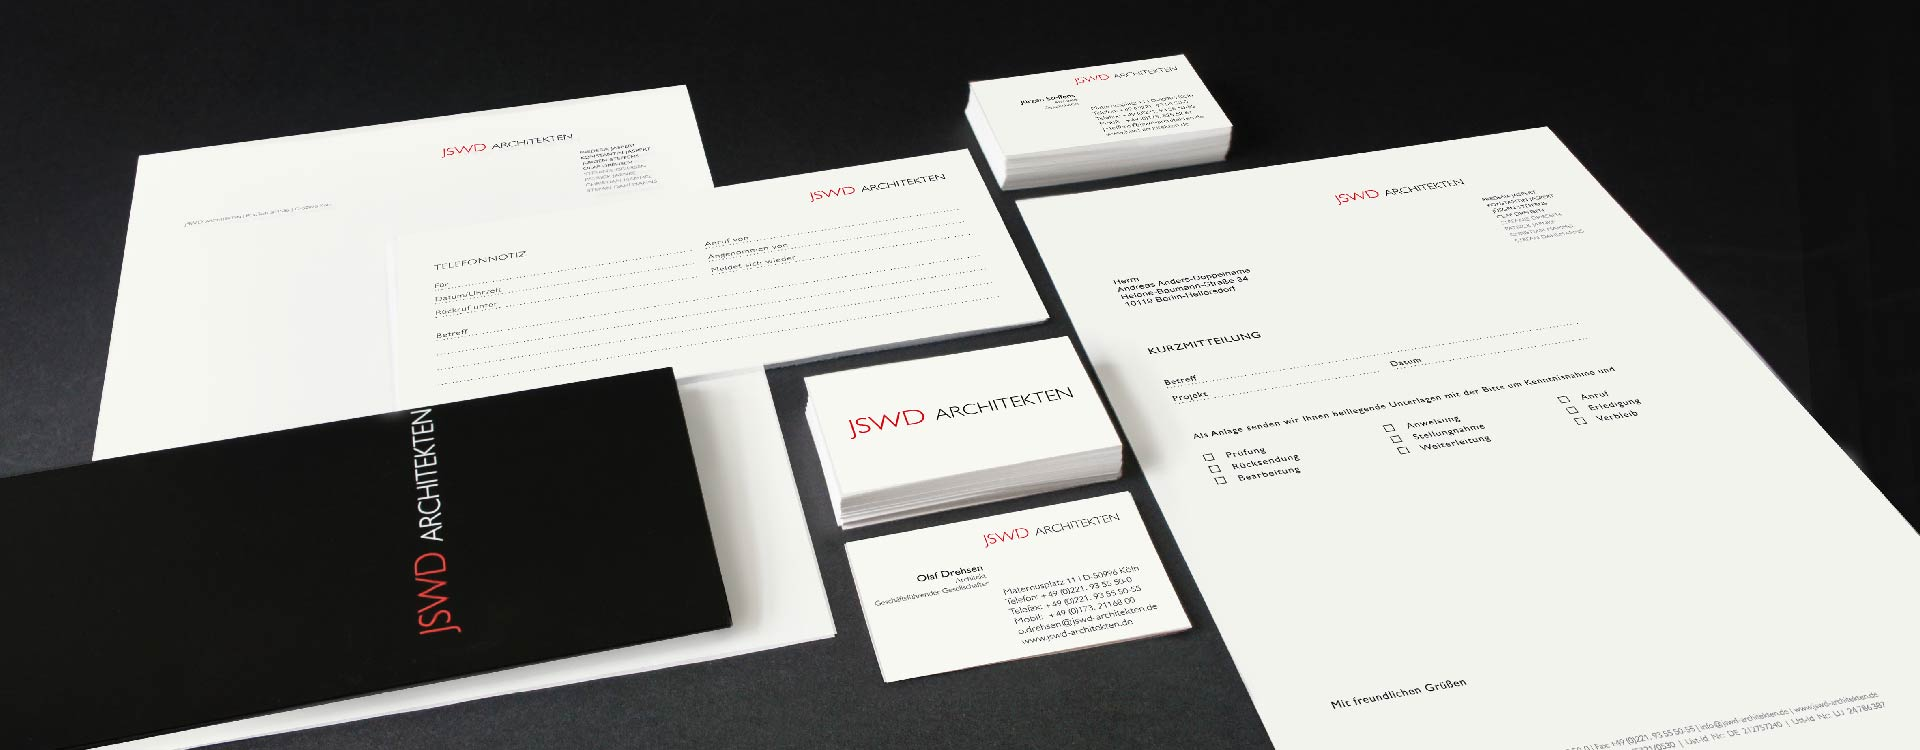 Logo, business cards, letter-headed paper, and leaflet for JSWD Architekten, Köln; Design: Kattrin Richter | Graphic Design Studio